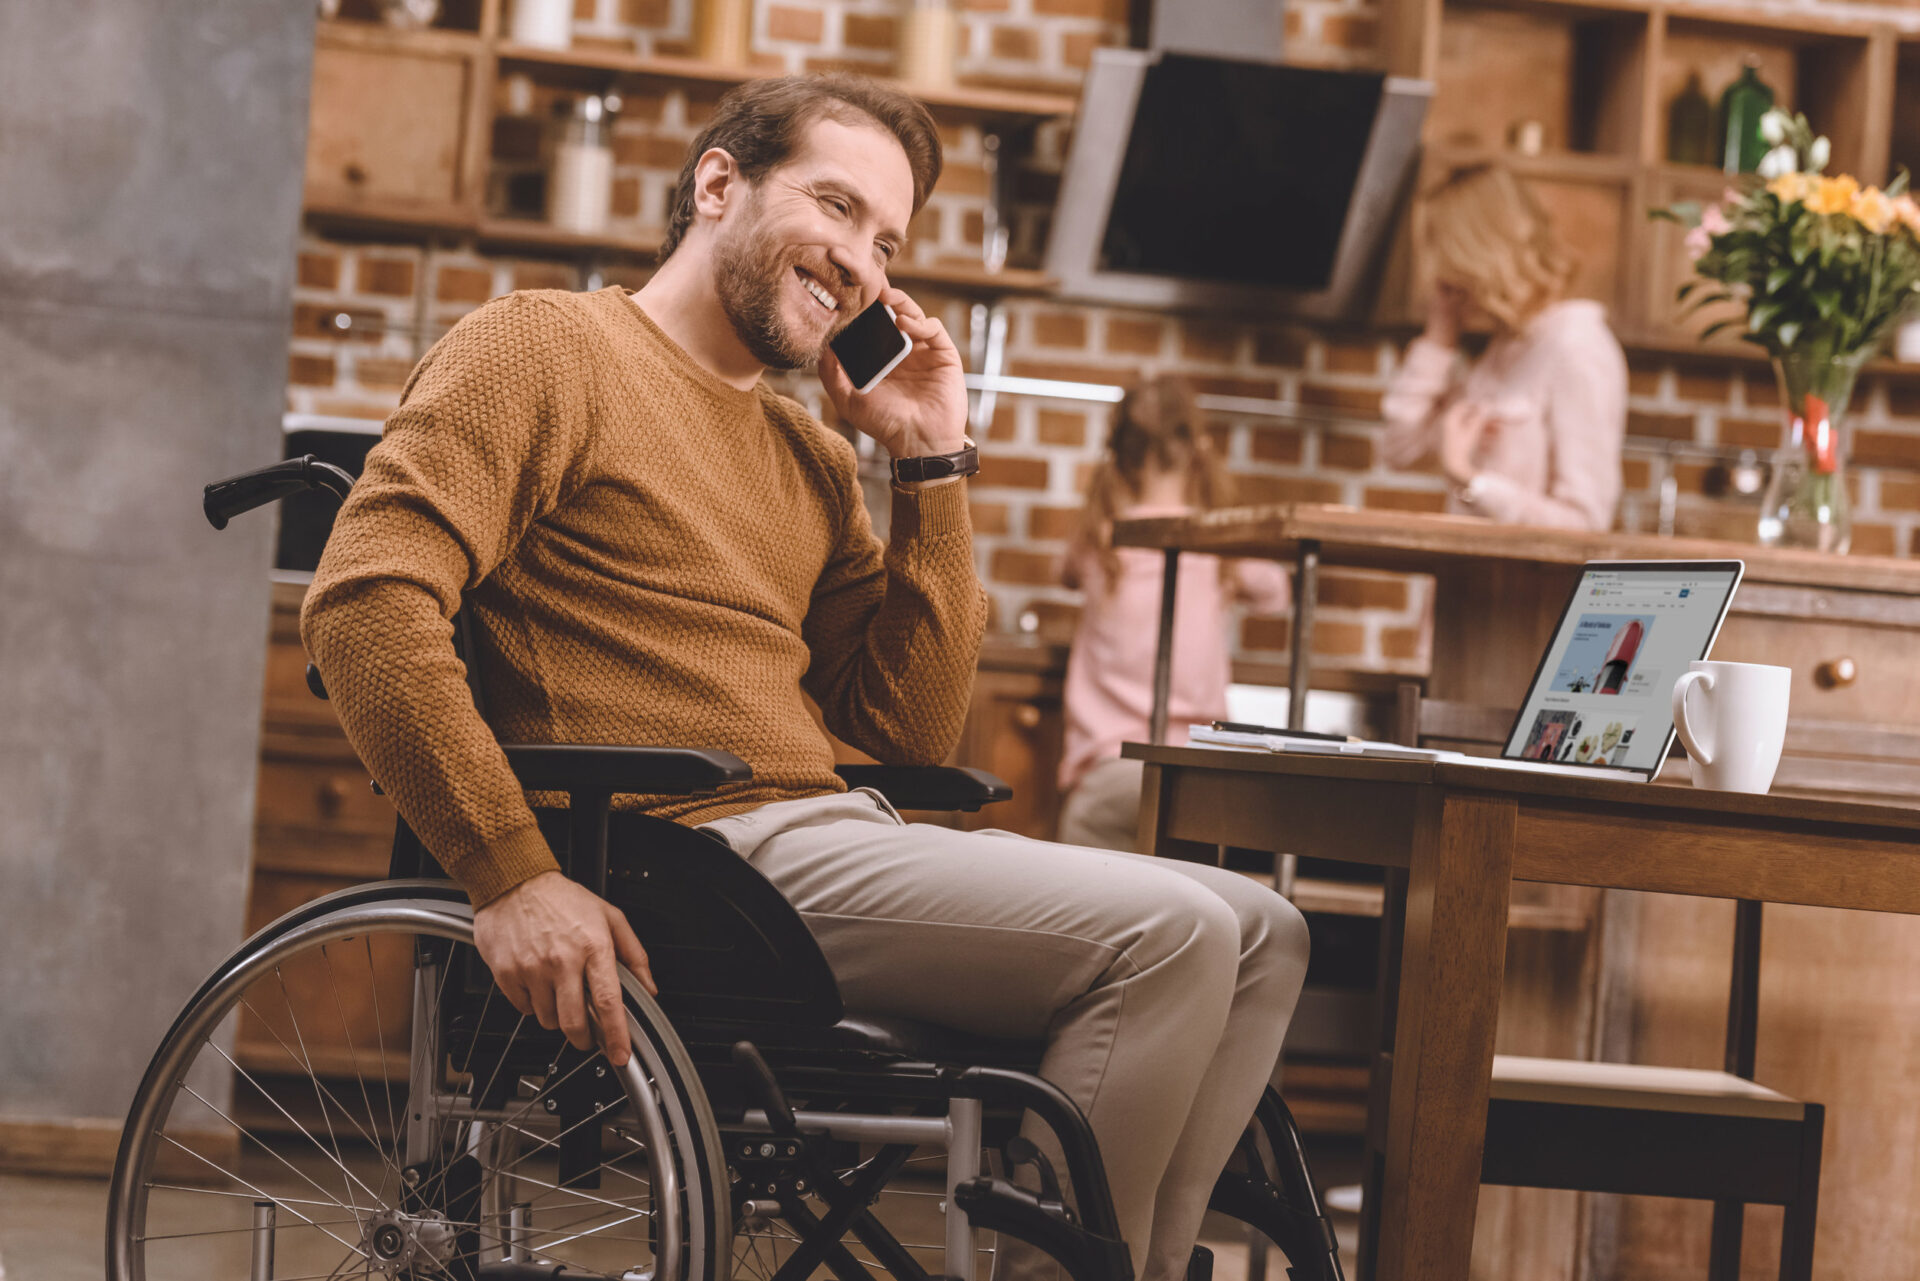 3 Tips for Designing an Accessible Home